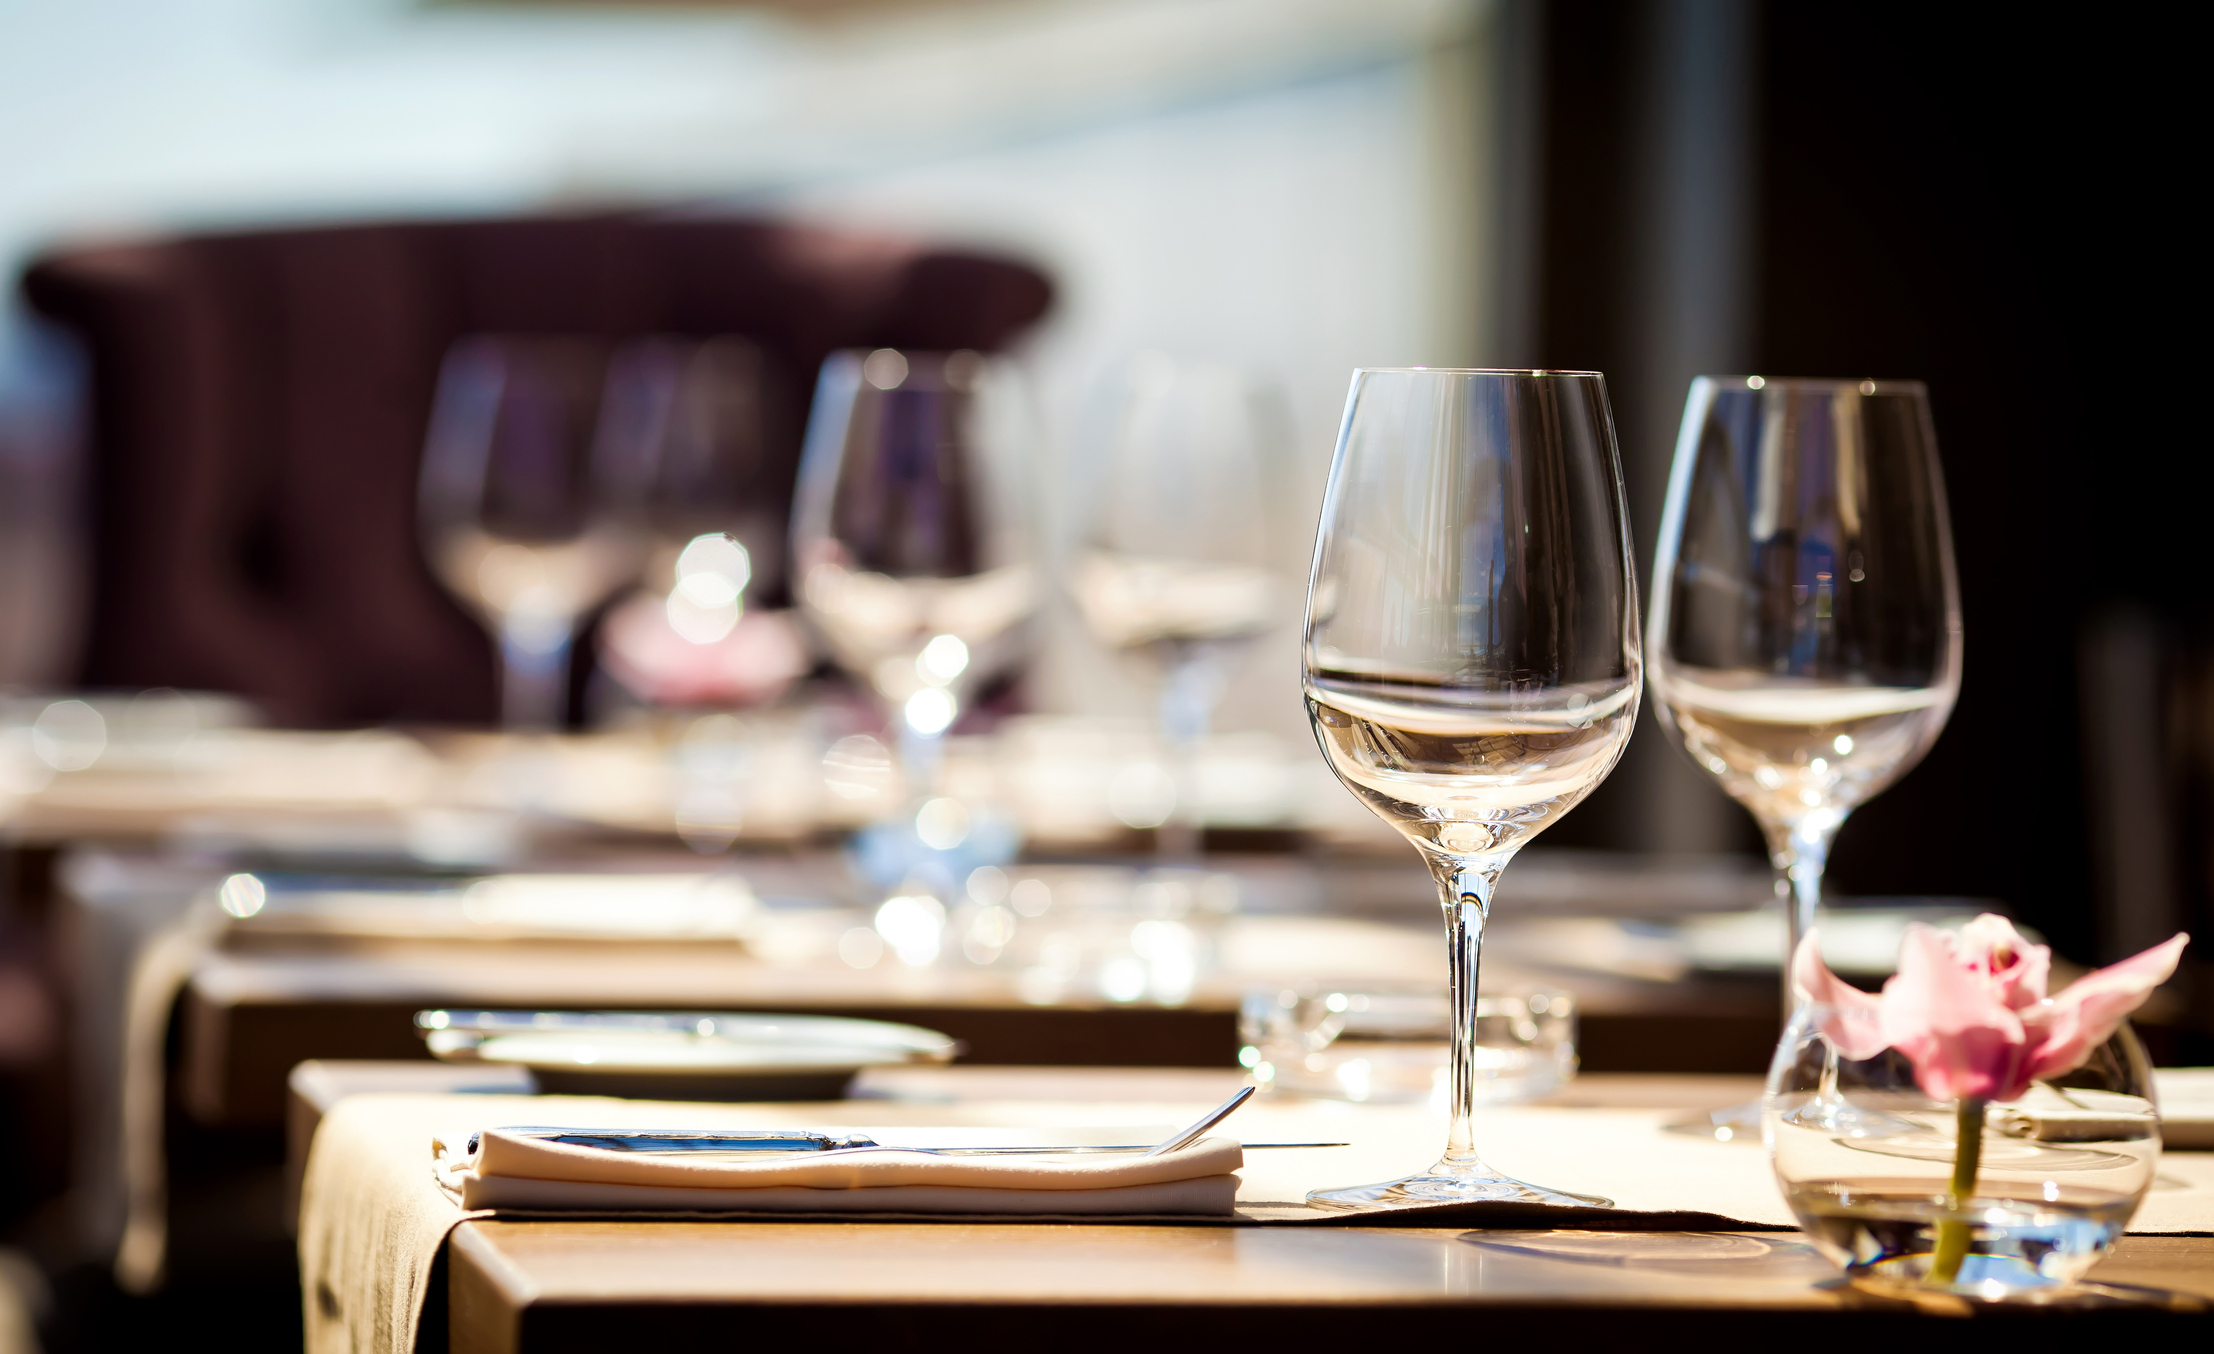 - Restaurant bookings/concierge. Our housekeeper will be happy to make recommendations and book restaurants and events on your behalf.